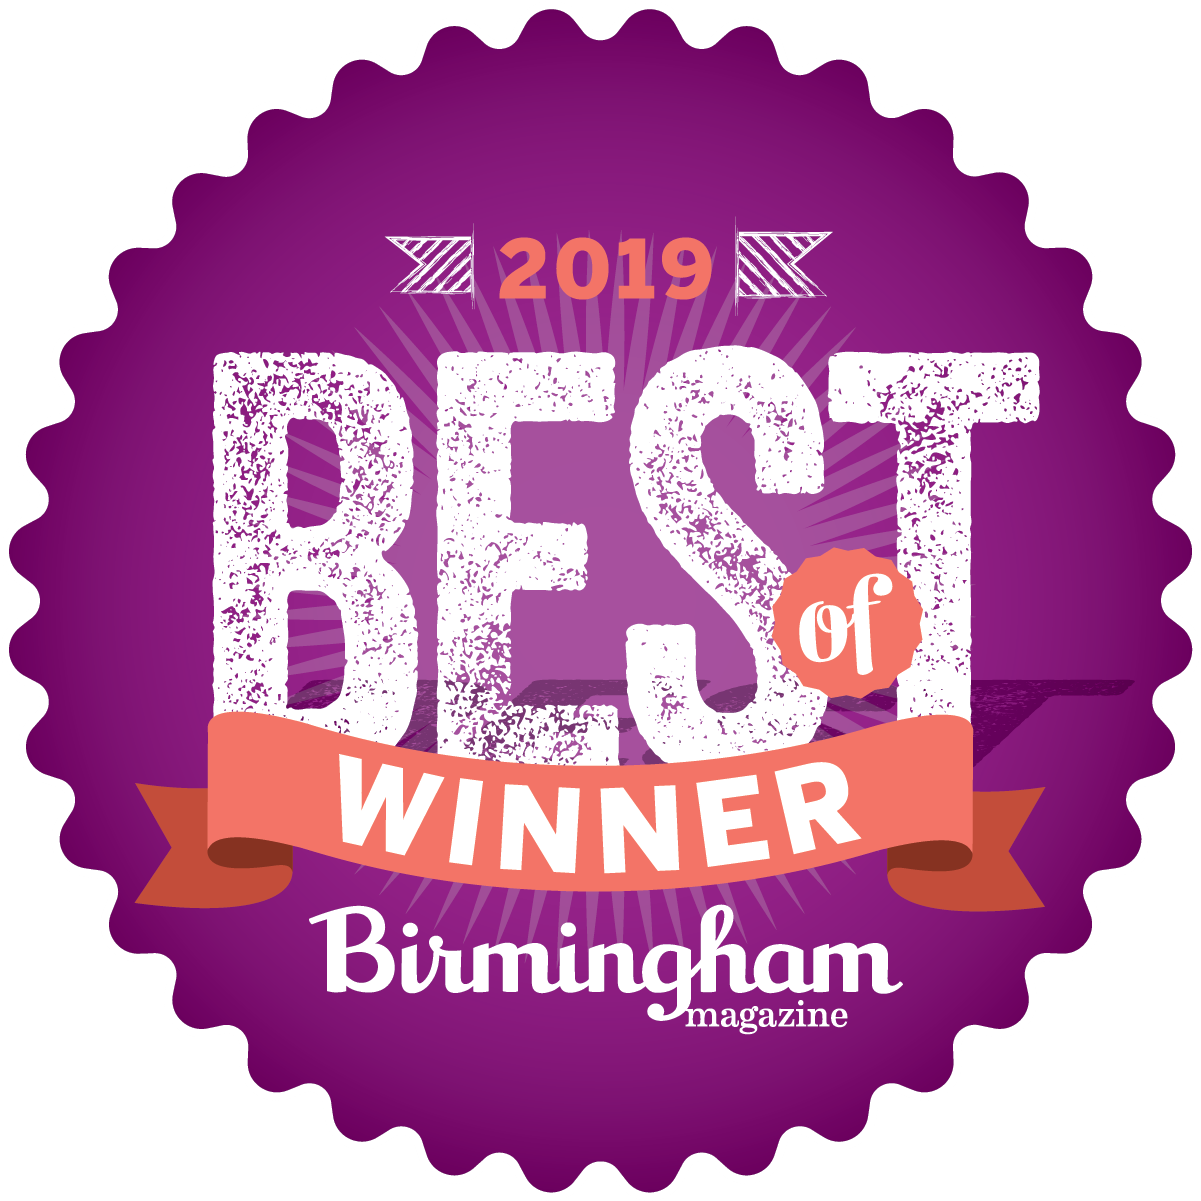 - Puzzle Piece is honored to have been named Best Special Needs Service in Birmingham by Birmingham Magazine in 2019.